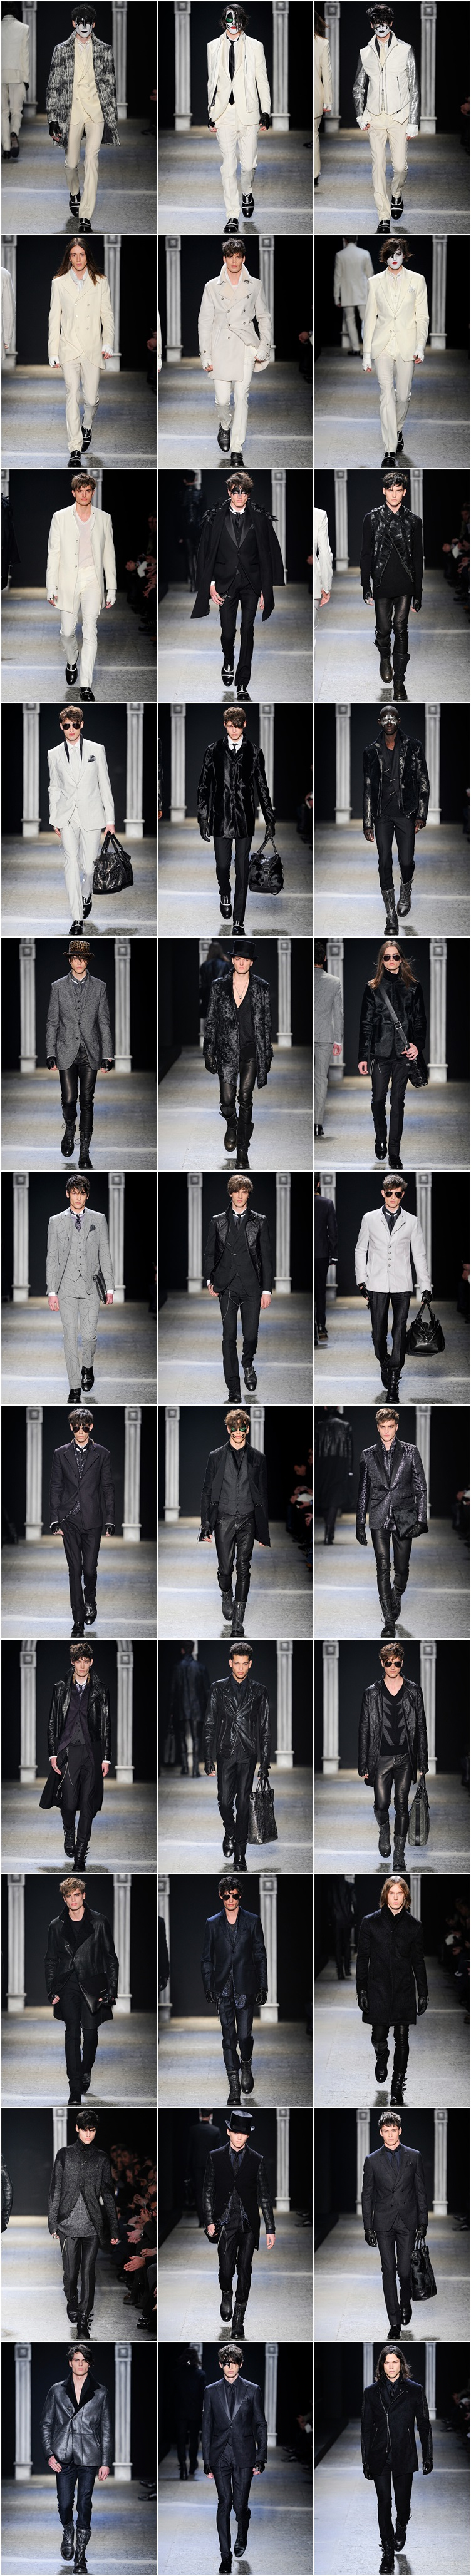 john-varvatos-fall-winter-2014-collectionfashion4addicts.com